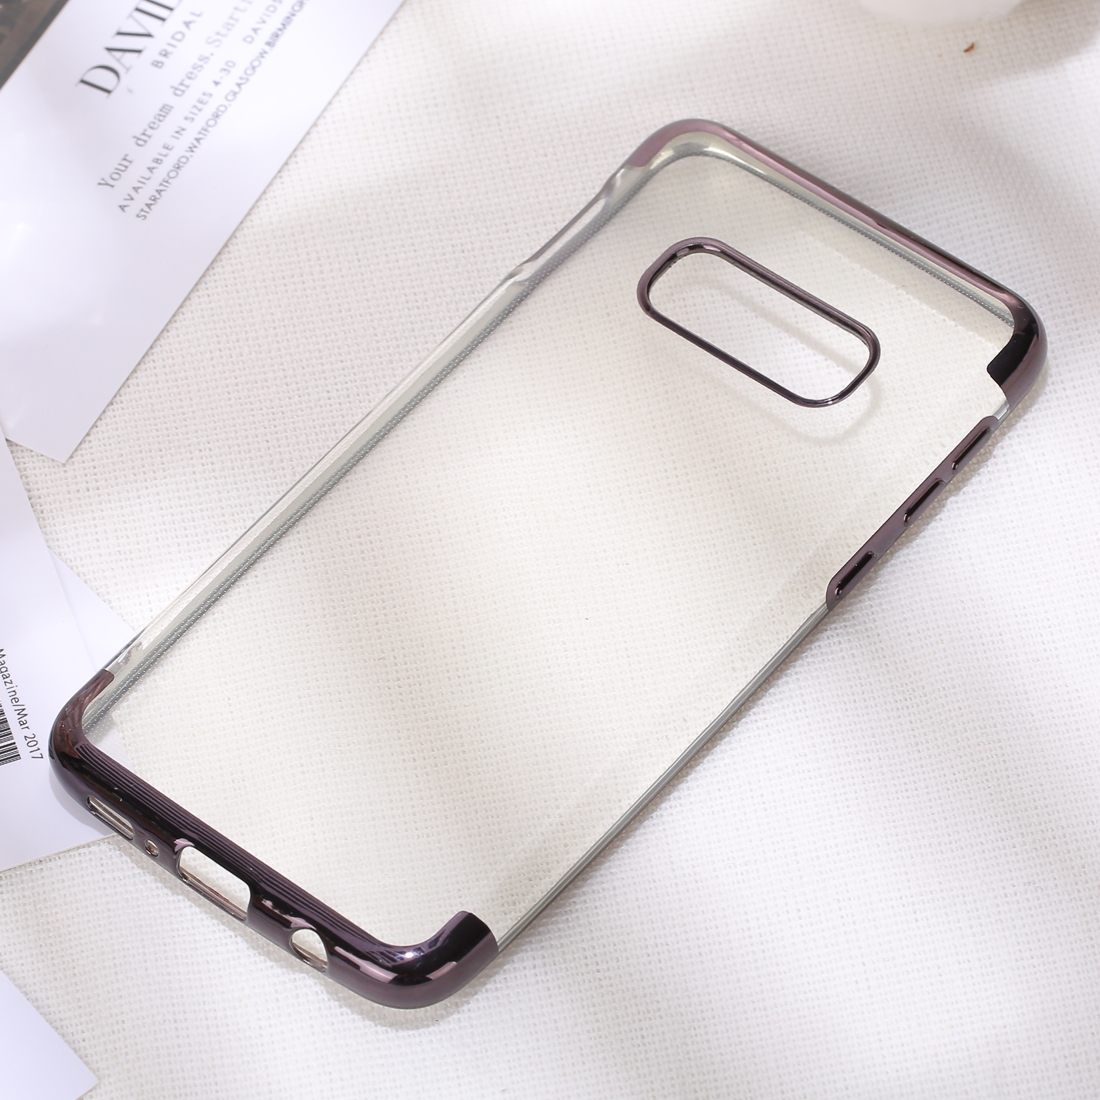 Three Sections Electroplating Side TPU Protective Back Case for Galaxy S10 E (Black)